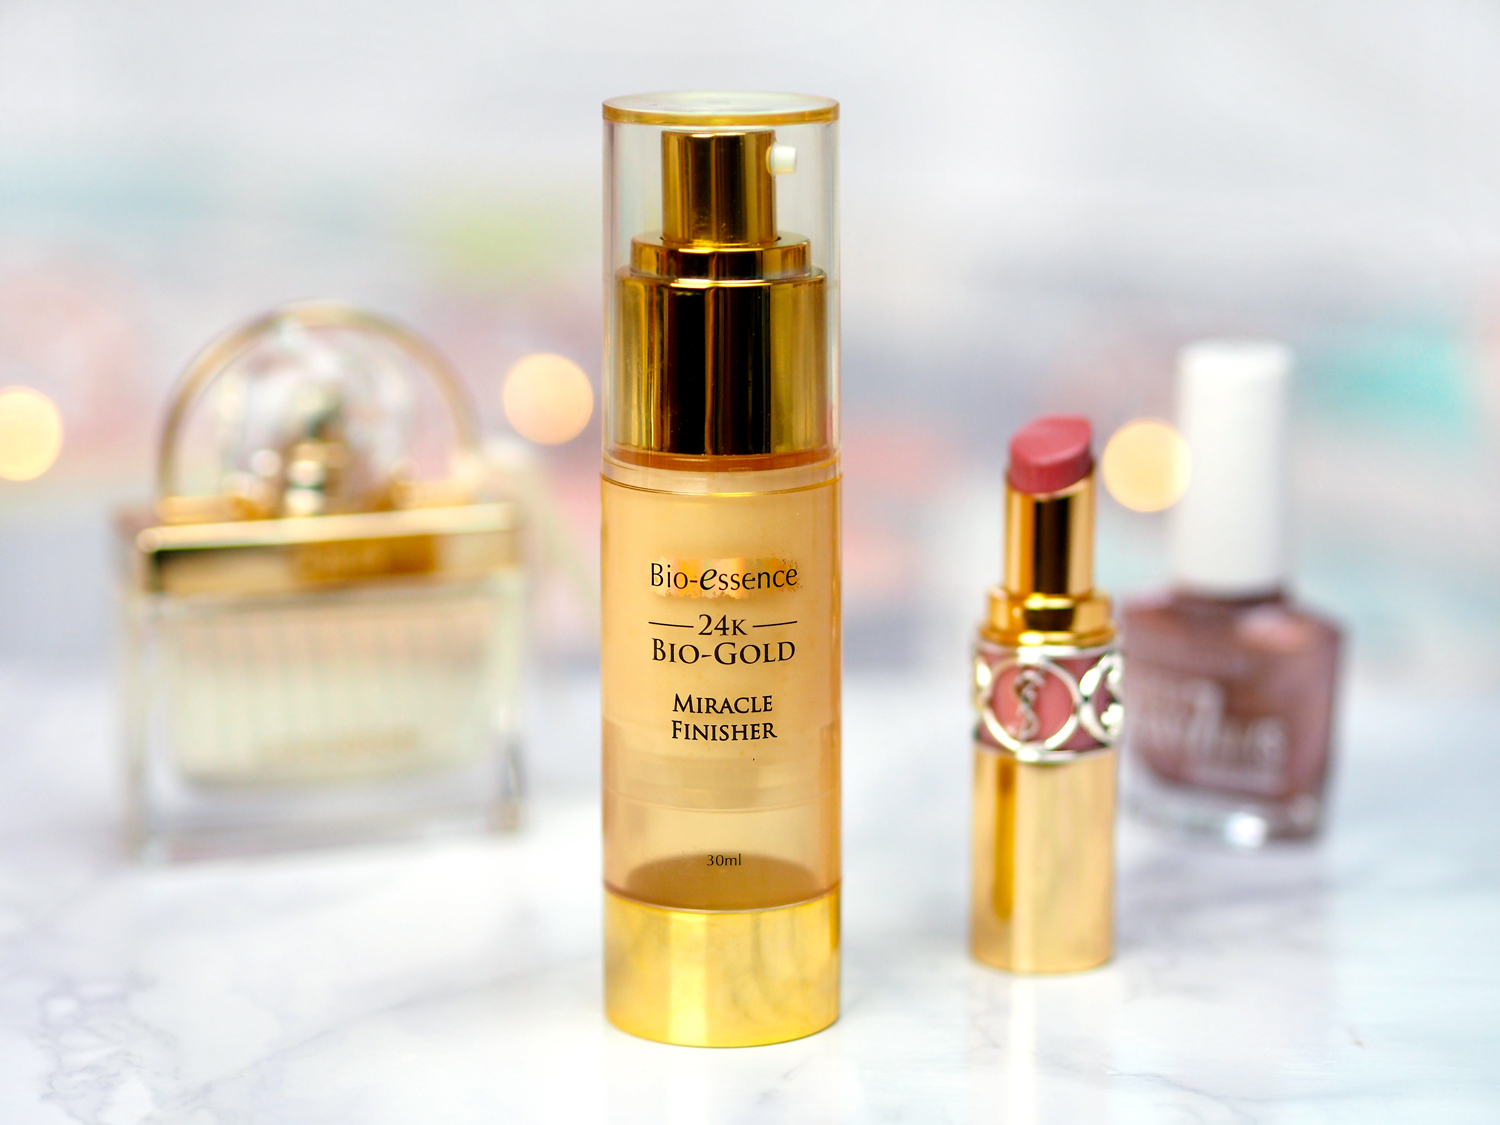 High End Hero Bio Essence 24k Bio Gold Miracle Finisher